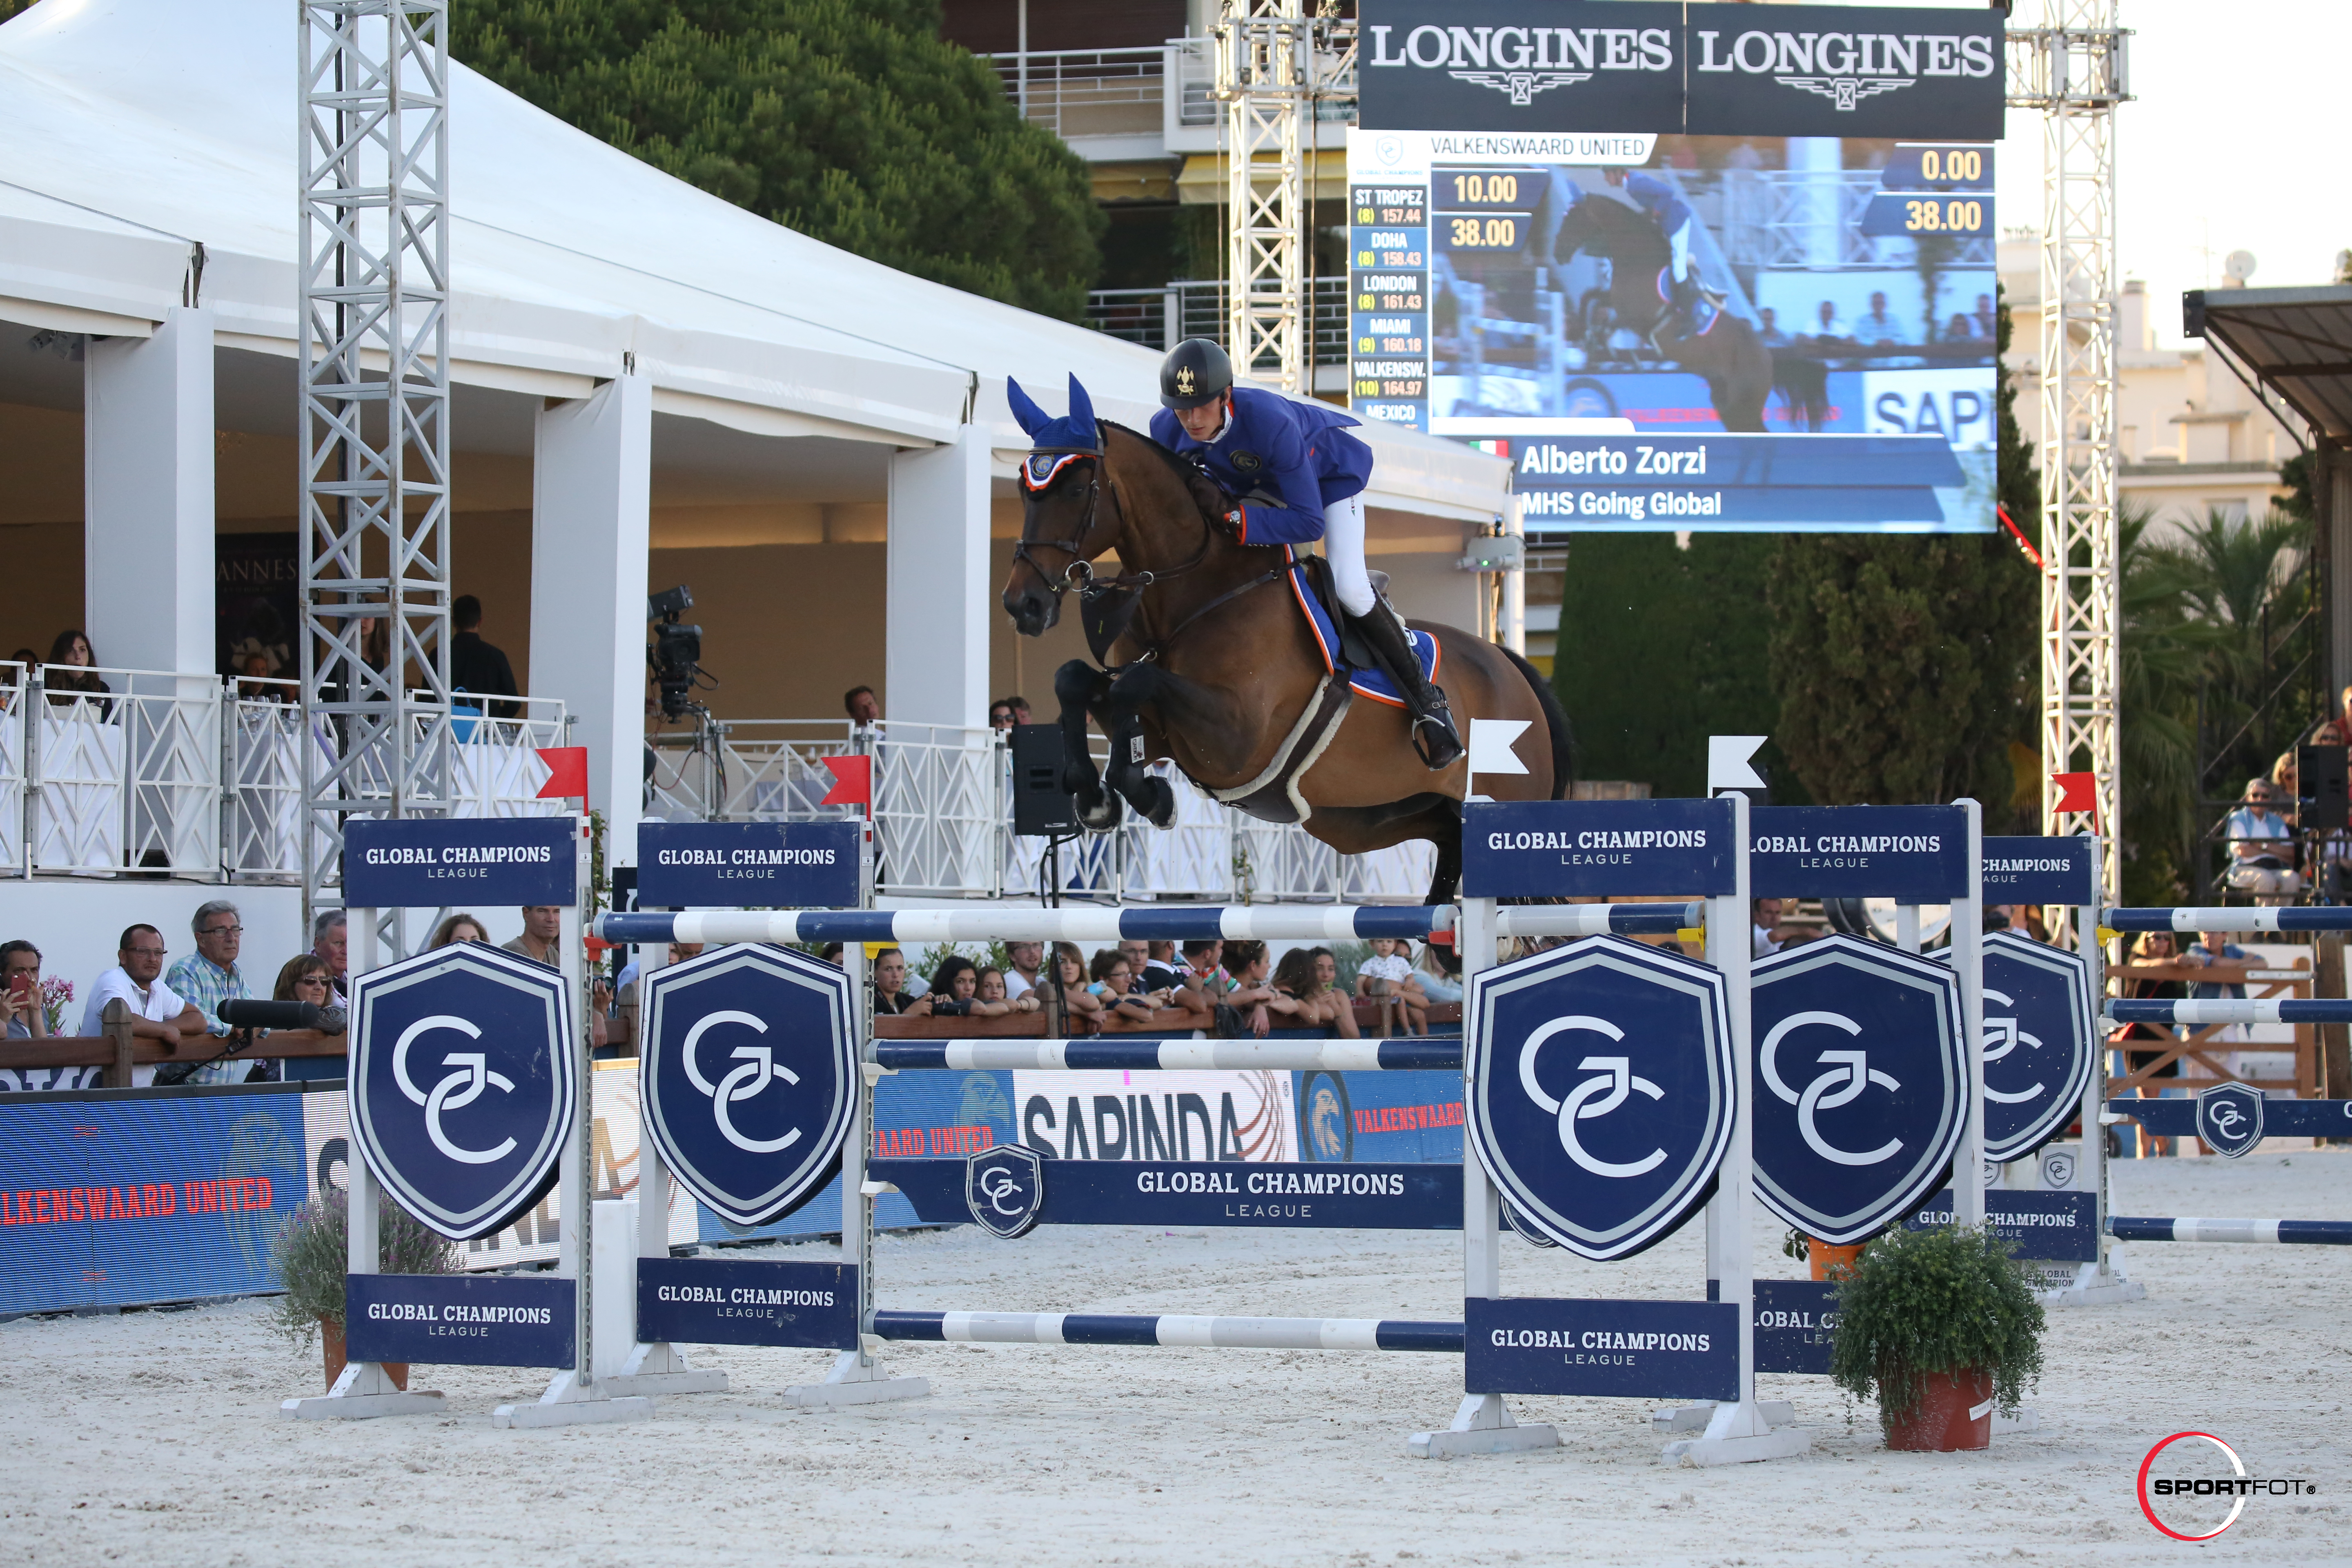 LGCT_Cannes_2017_Alberto Zorzi_Going Global_Sportfot7